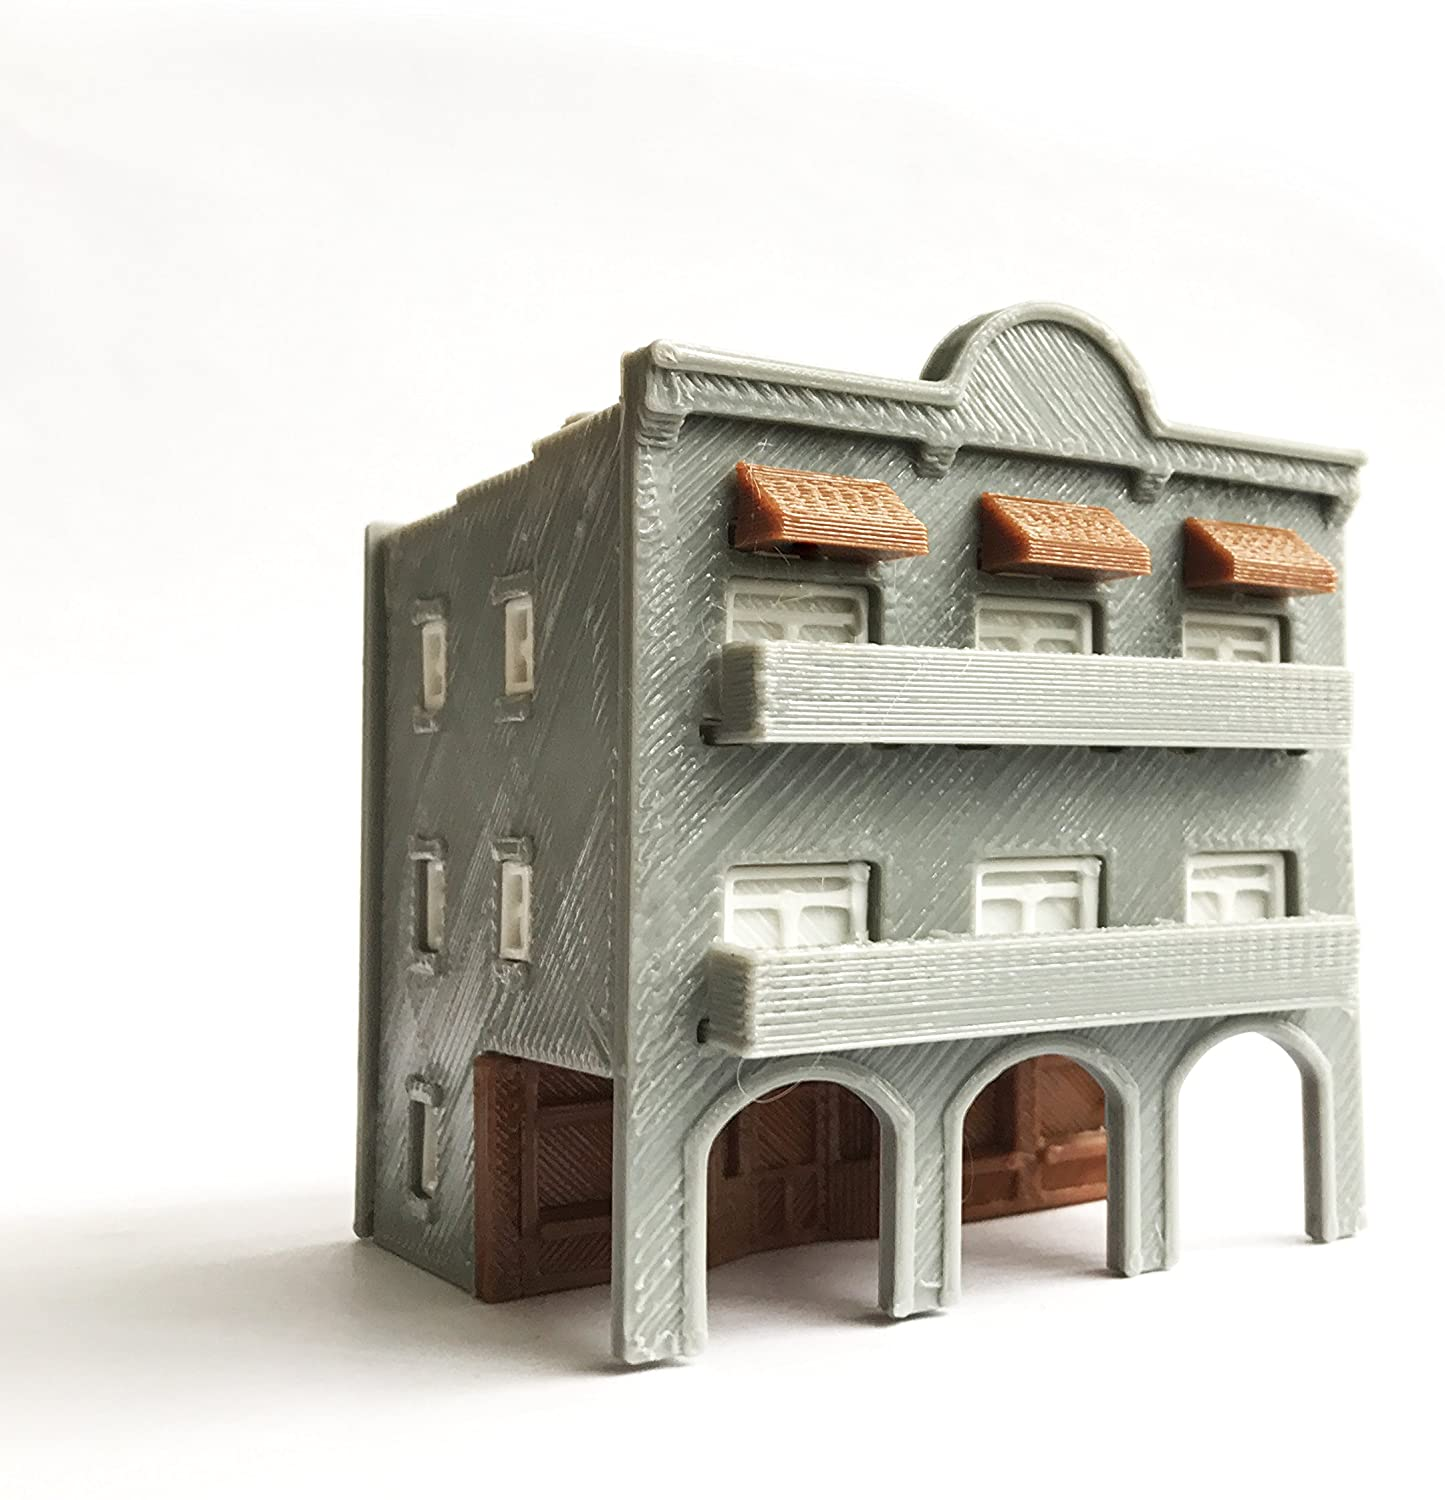 Outland Models Train Layout City Classic 3-Story Arcade Building N Scale 1:160